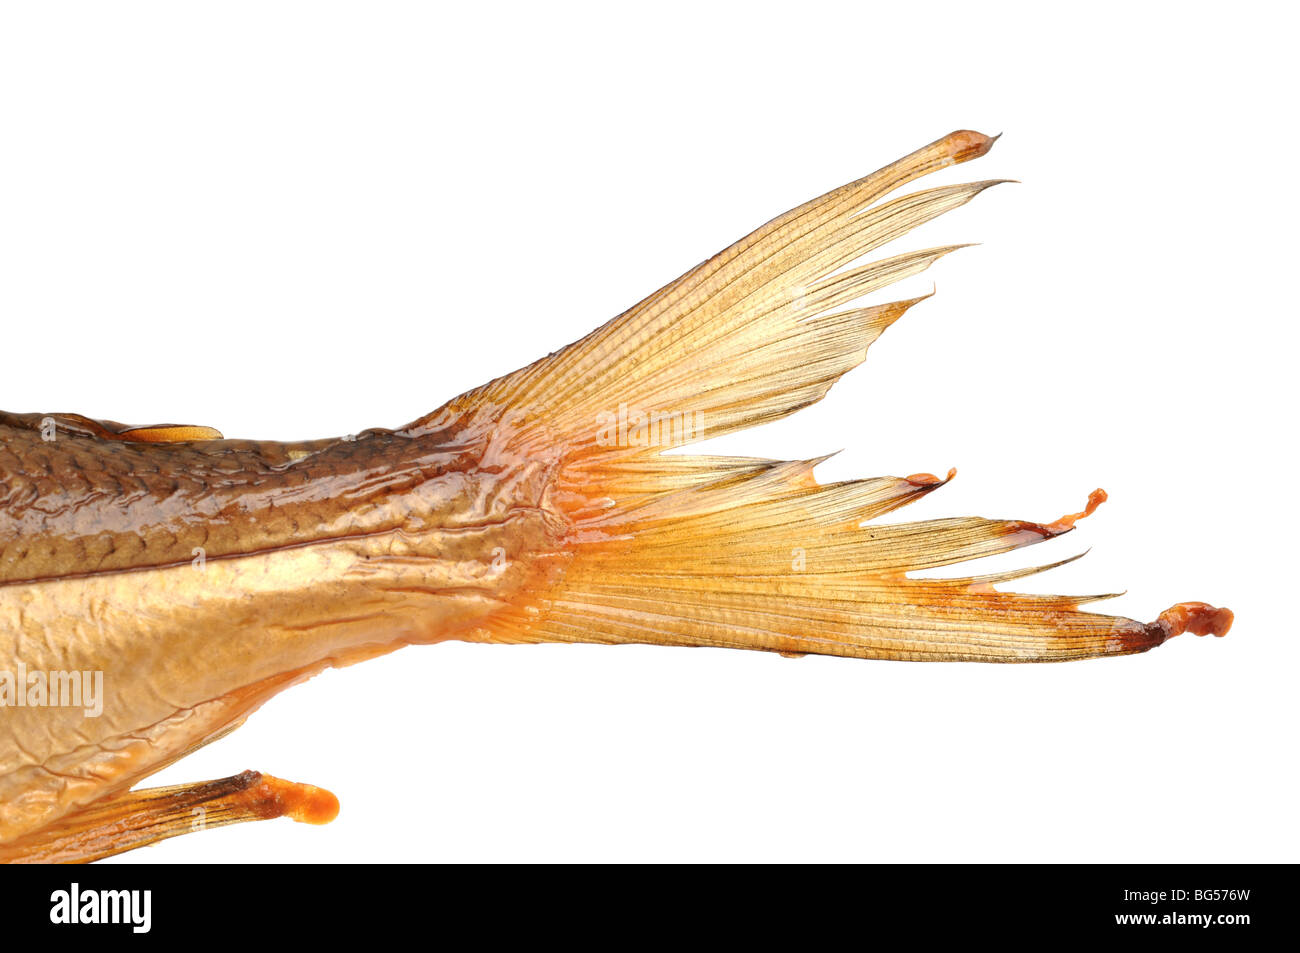 Tail of a smoked whitefish from the Bavarian Chiemsee - Stock Image